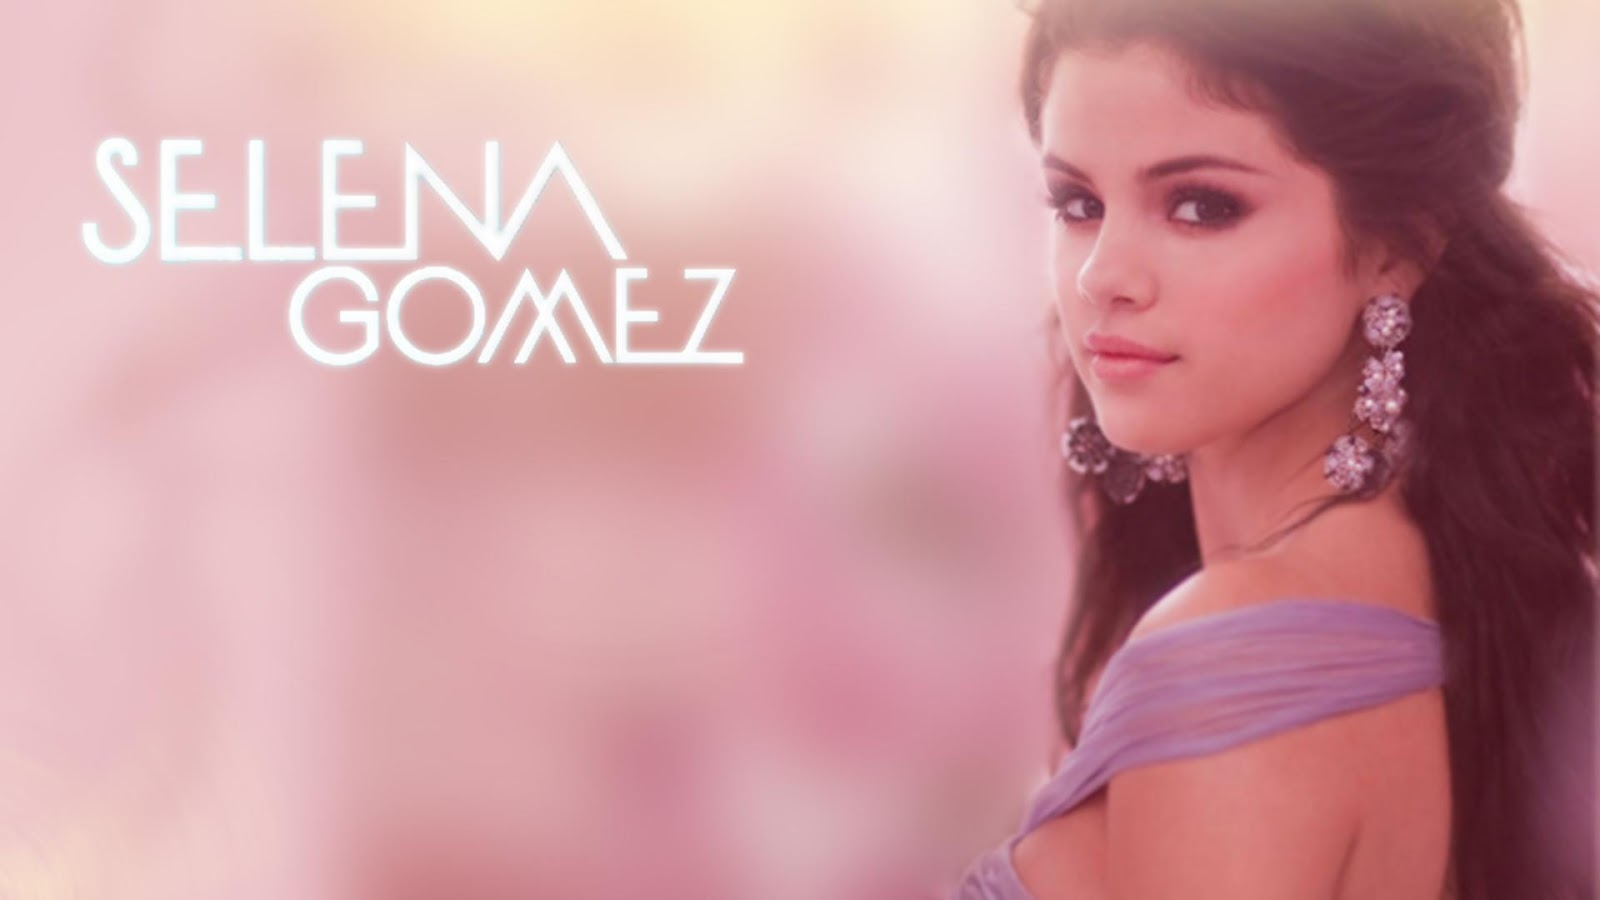 welcome to my selena gomez page